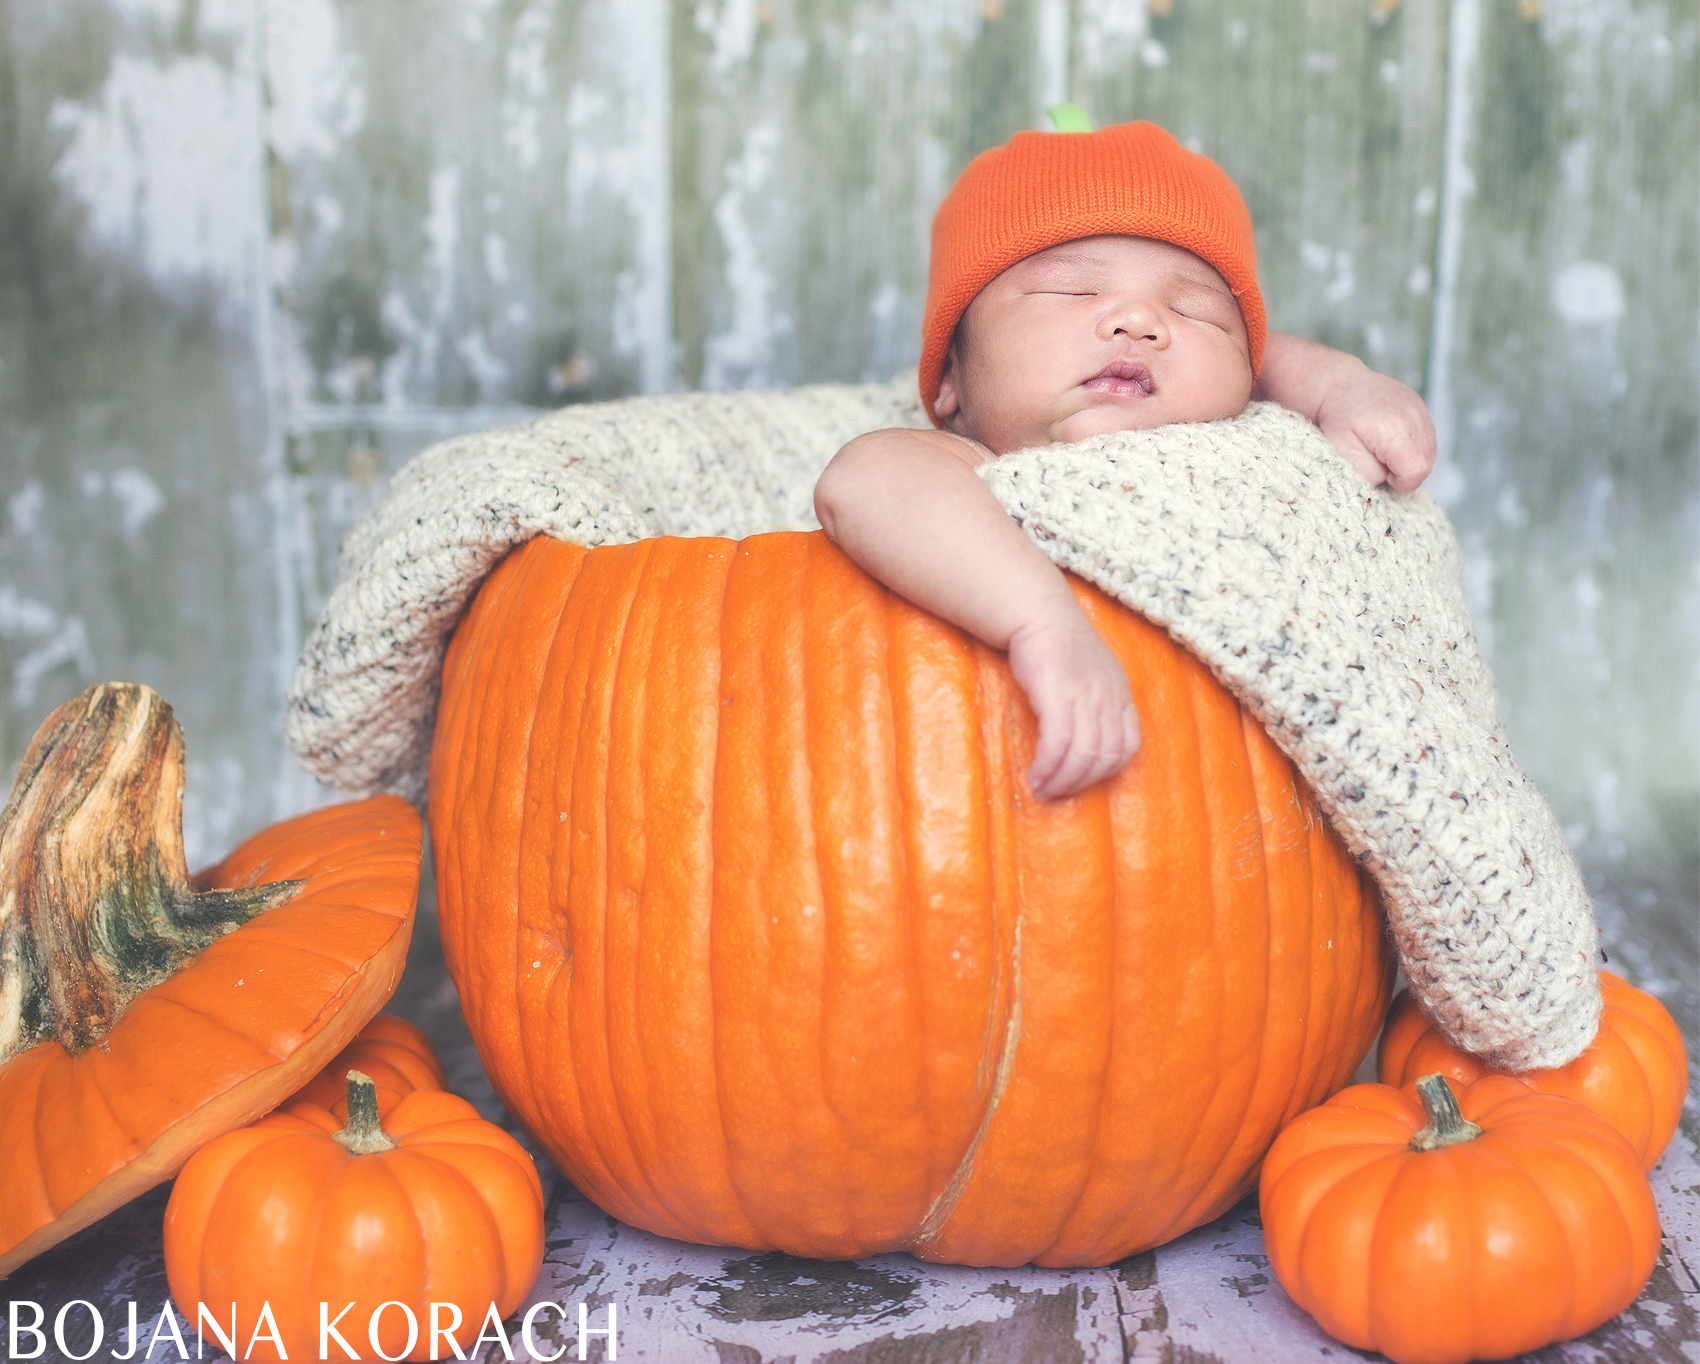 oakland-newborn-photography-in-a-pumpkin